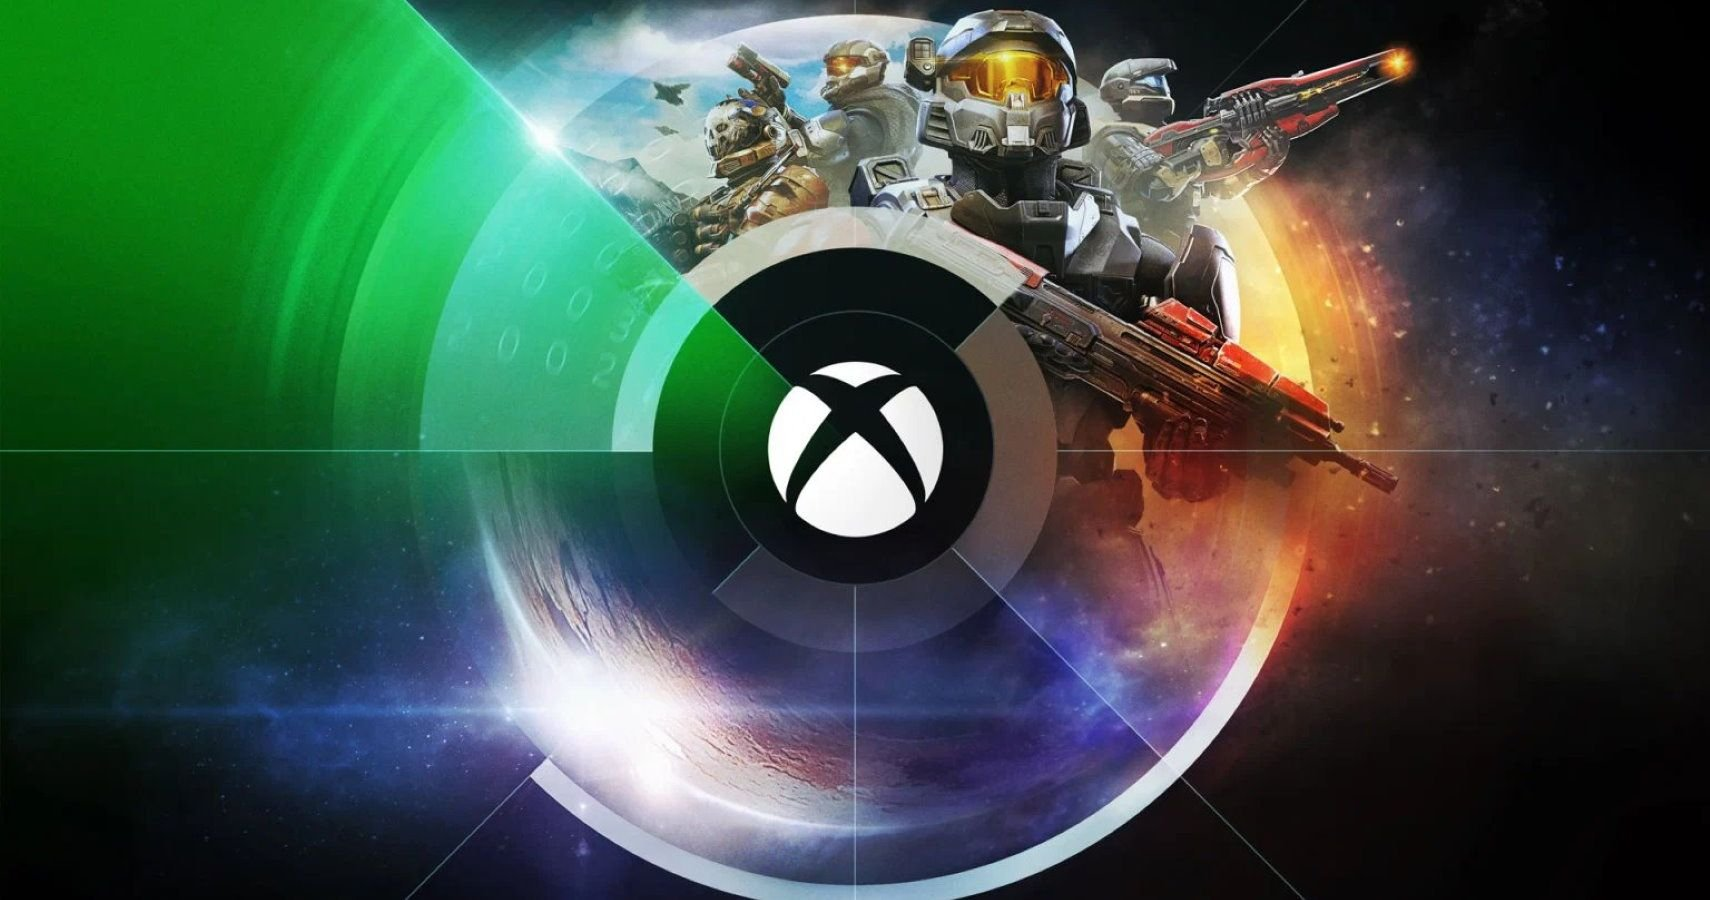 Xbox Bringing Another Showcase This Week Just Days After E3